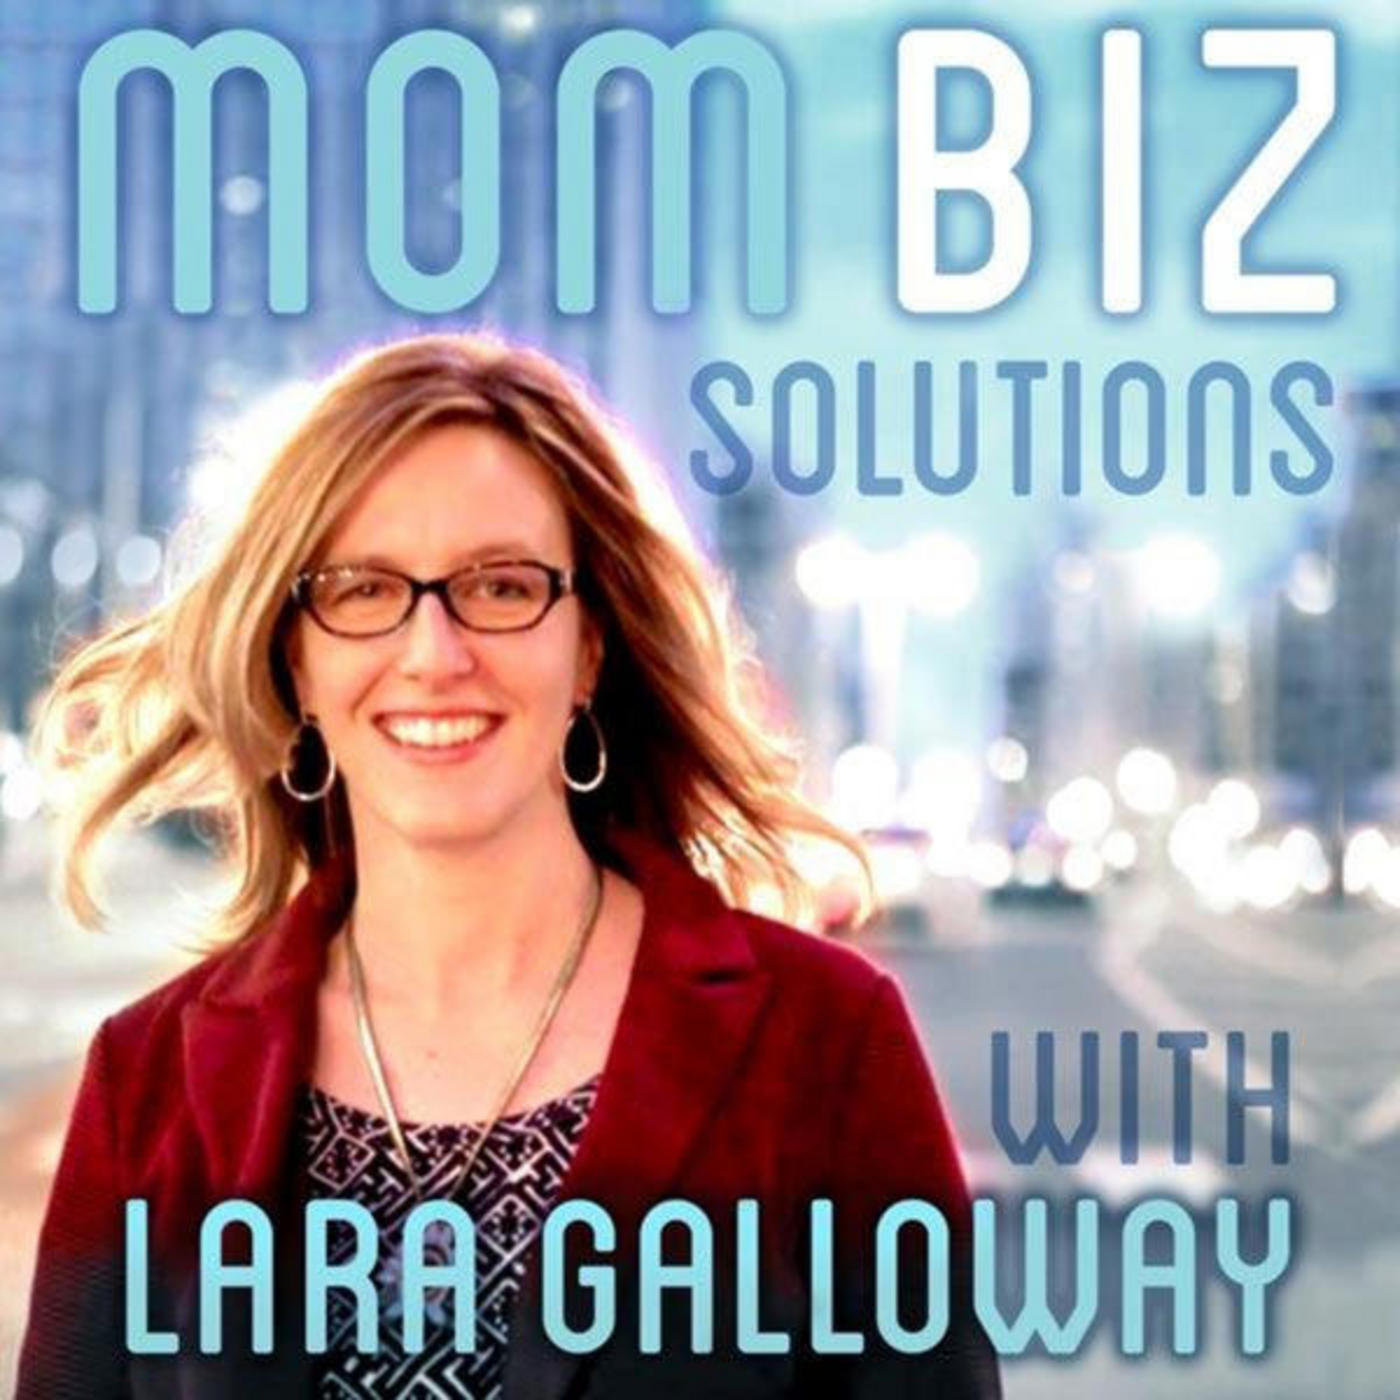 How to Handle Criticism from Yourself and/or Others - Mom Biz Solutions Show